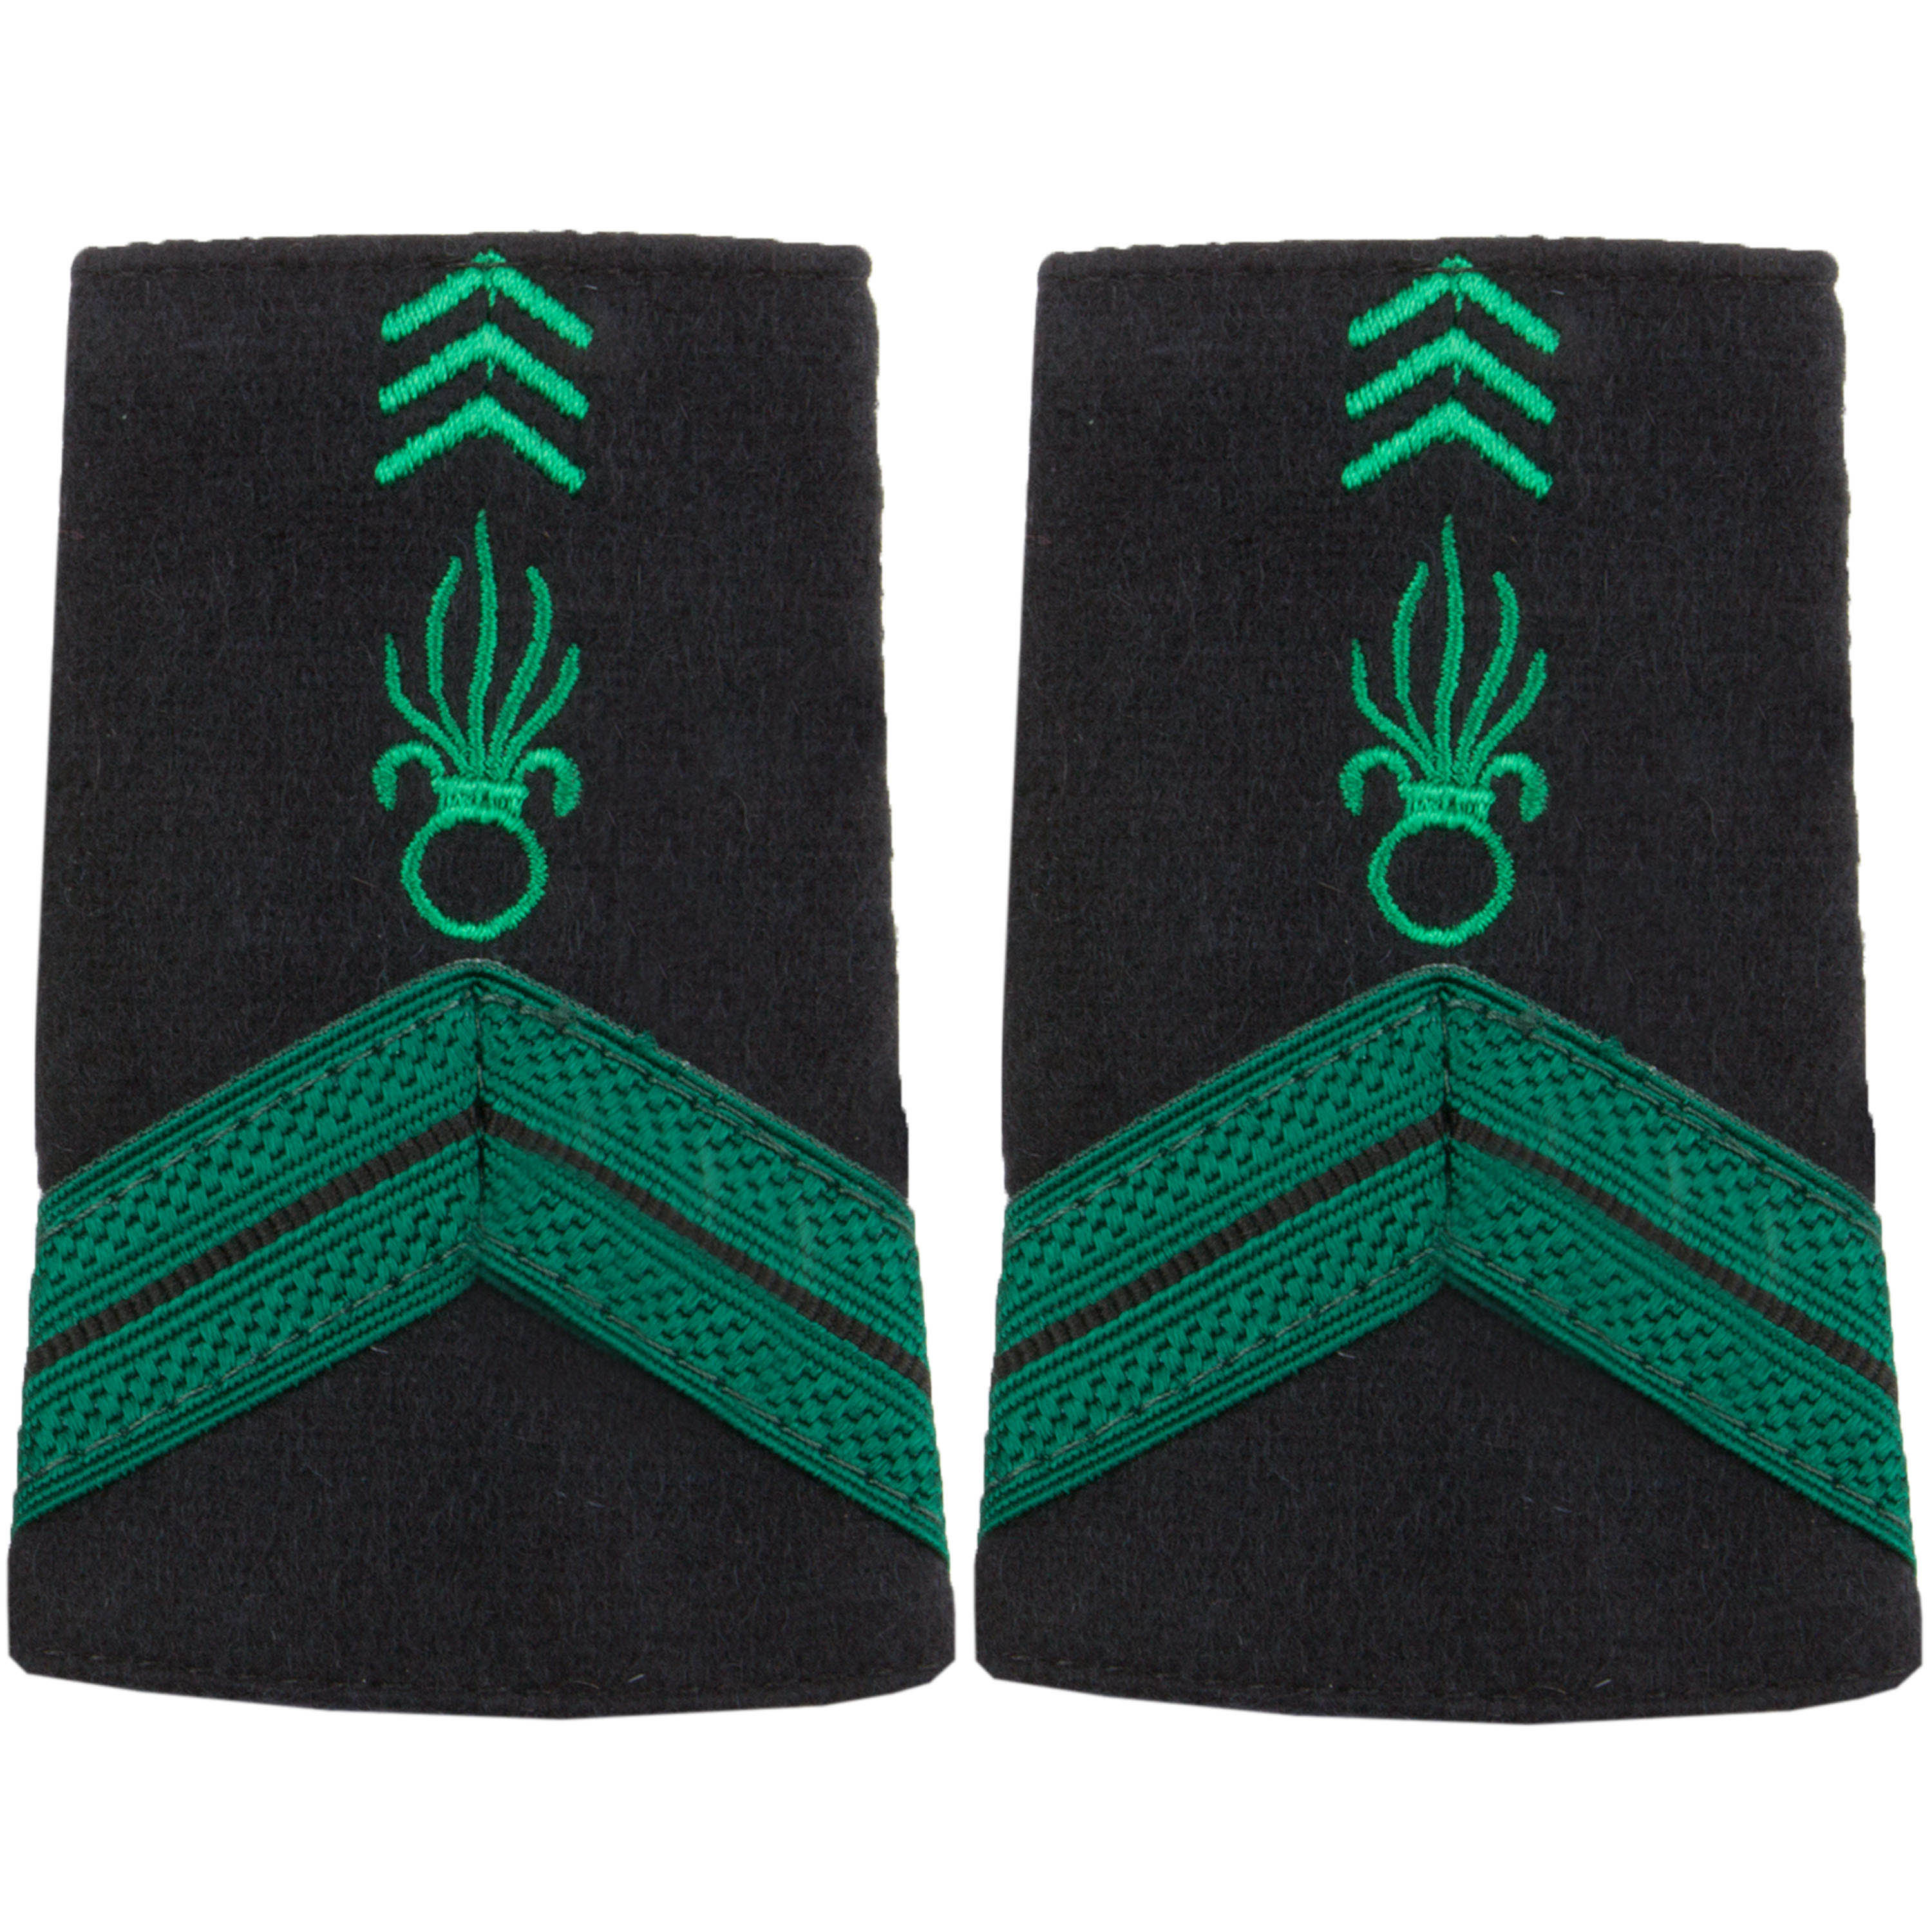 Textile Rank Insignia Caporal Légion green/black